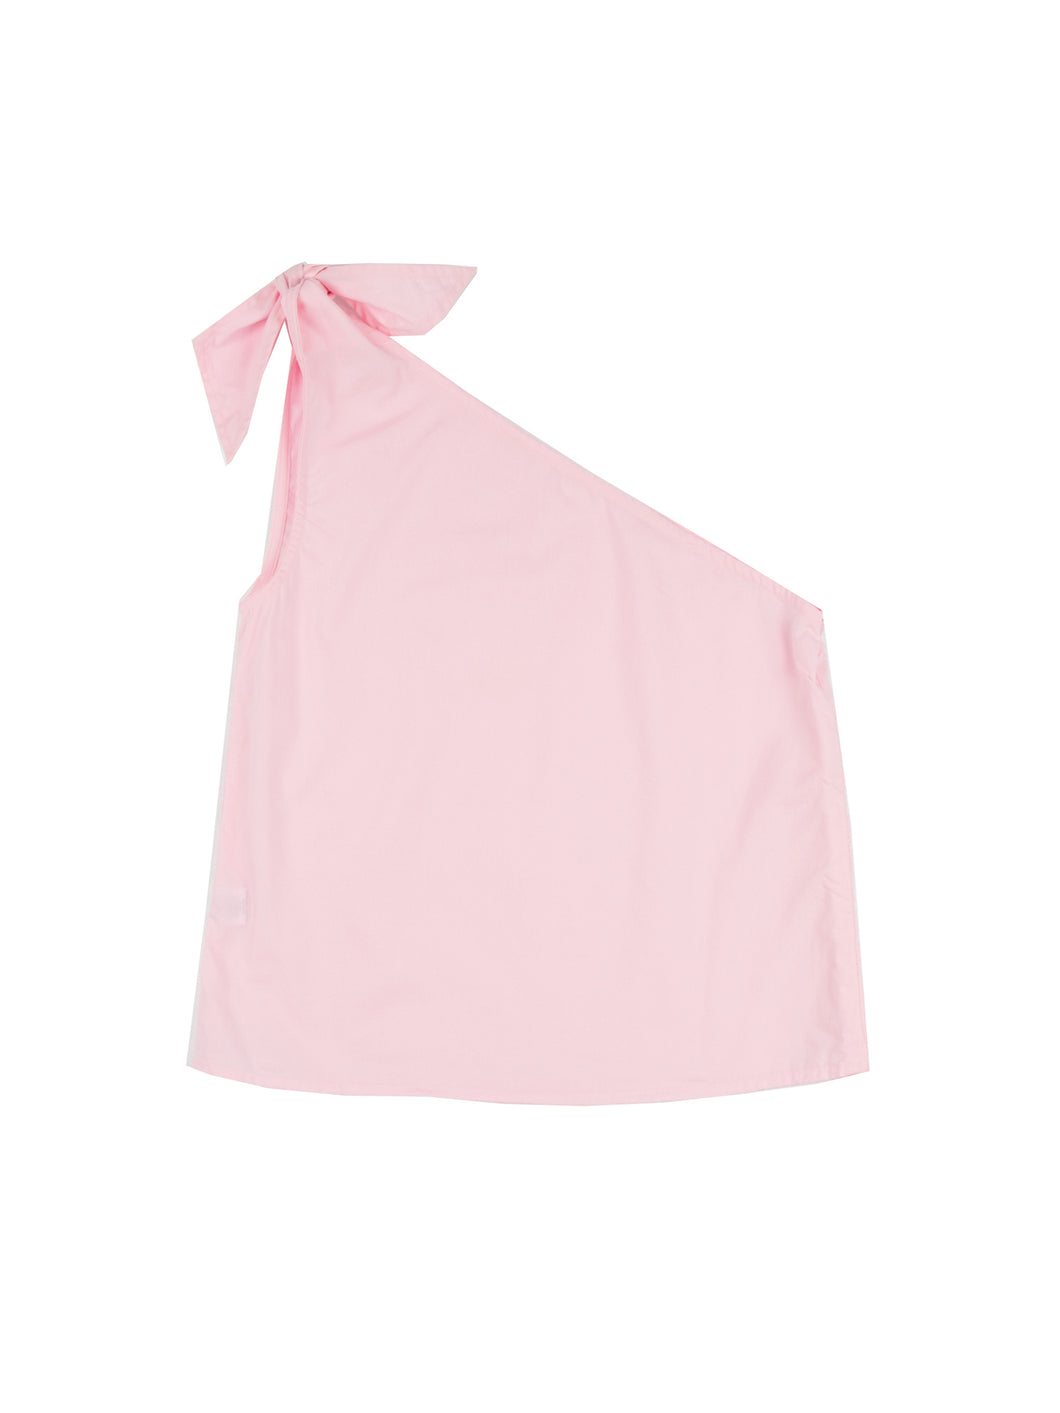 Diana top, pink rose